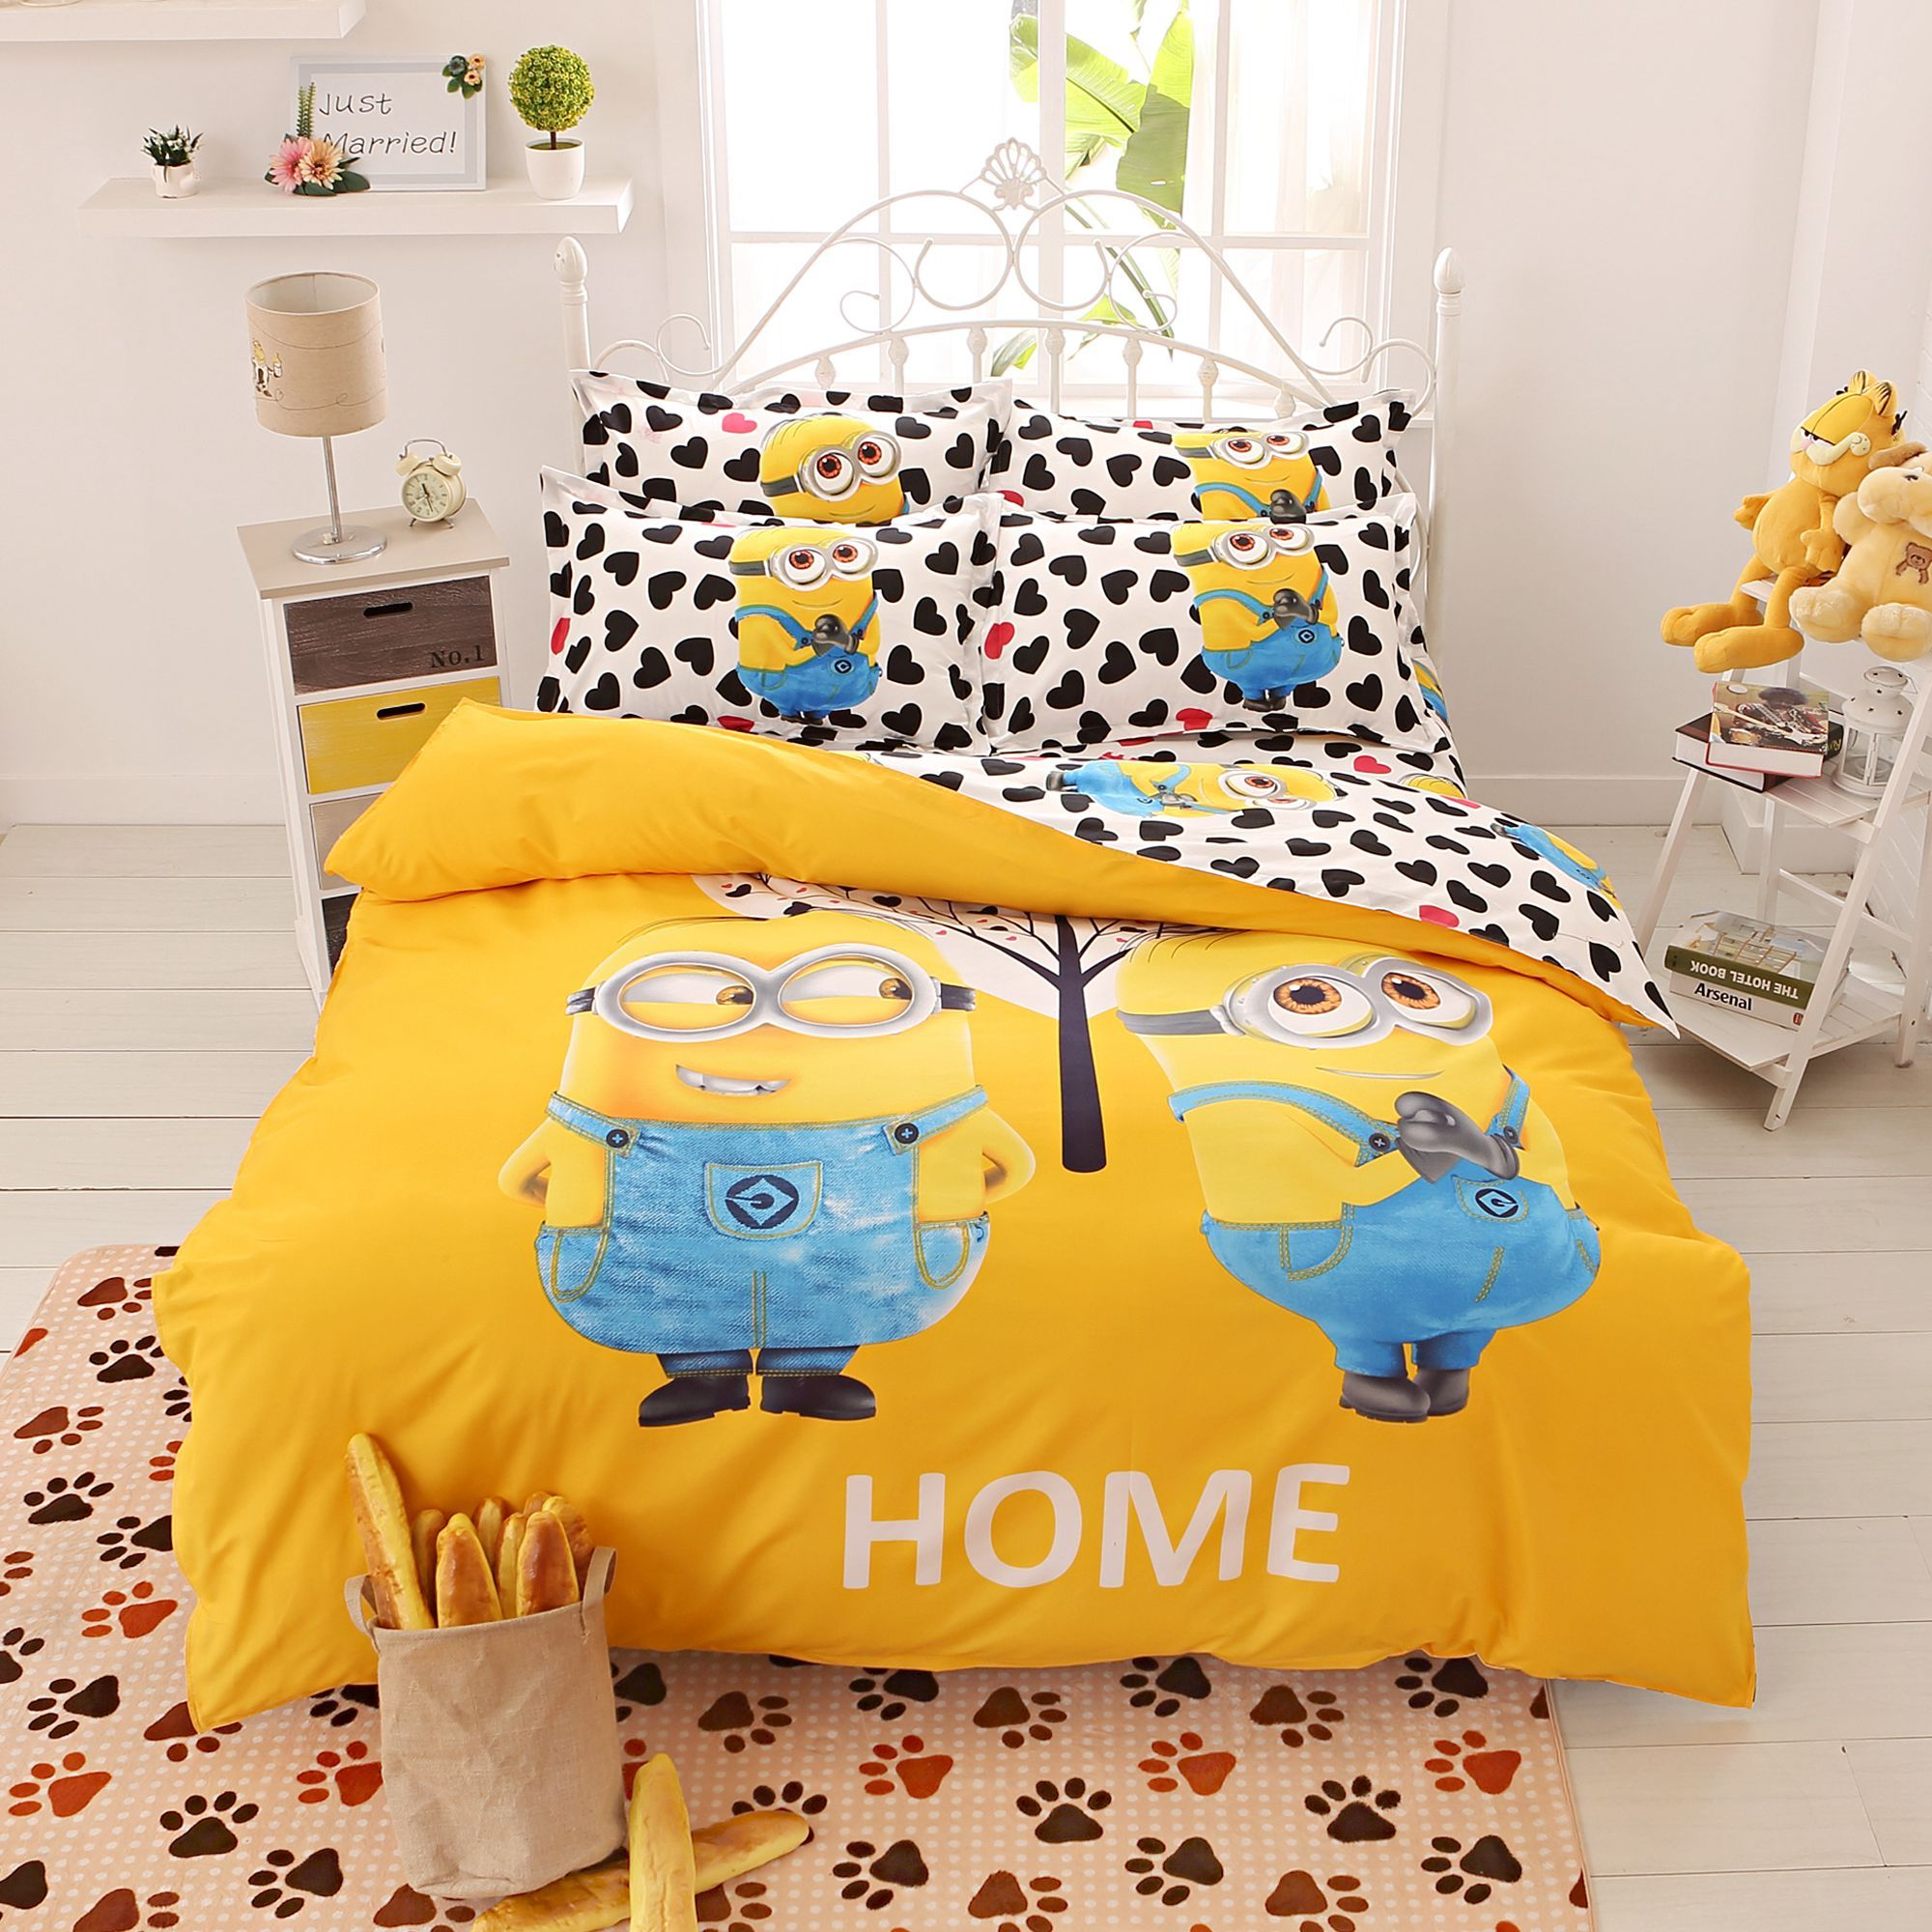 cool pas cher bande ensemble de literie pcs impression cama minions literie housse with housse. Black Bedroom Furniture Sets. Home Design Ideas